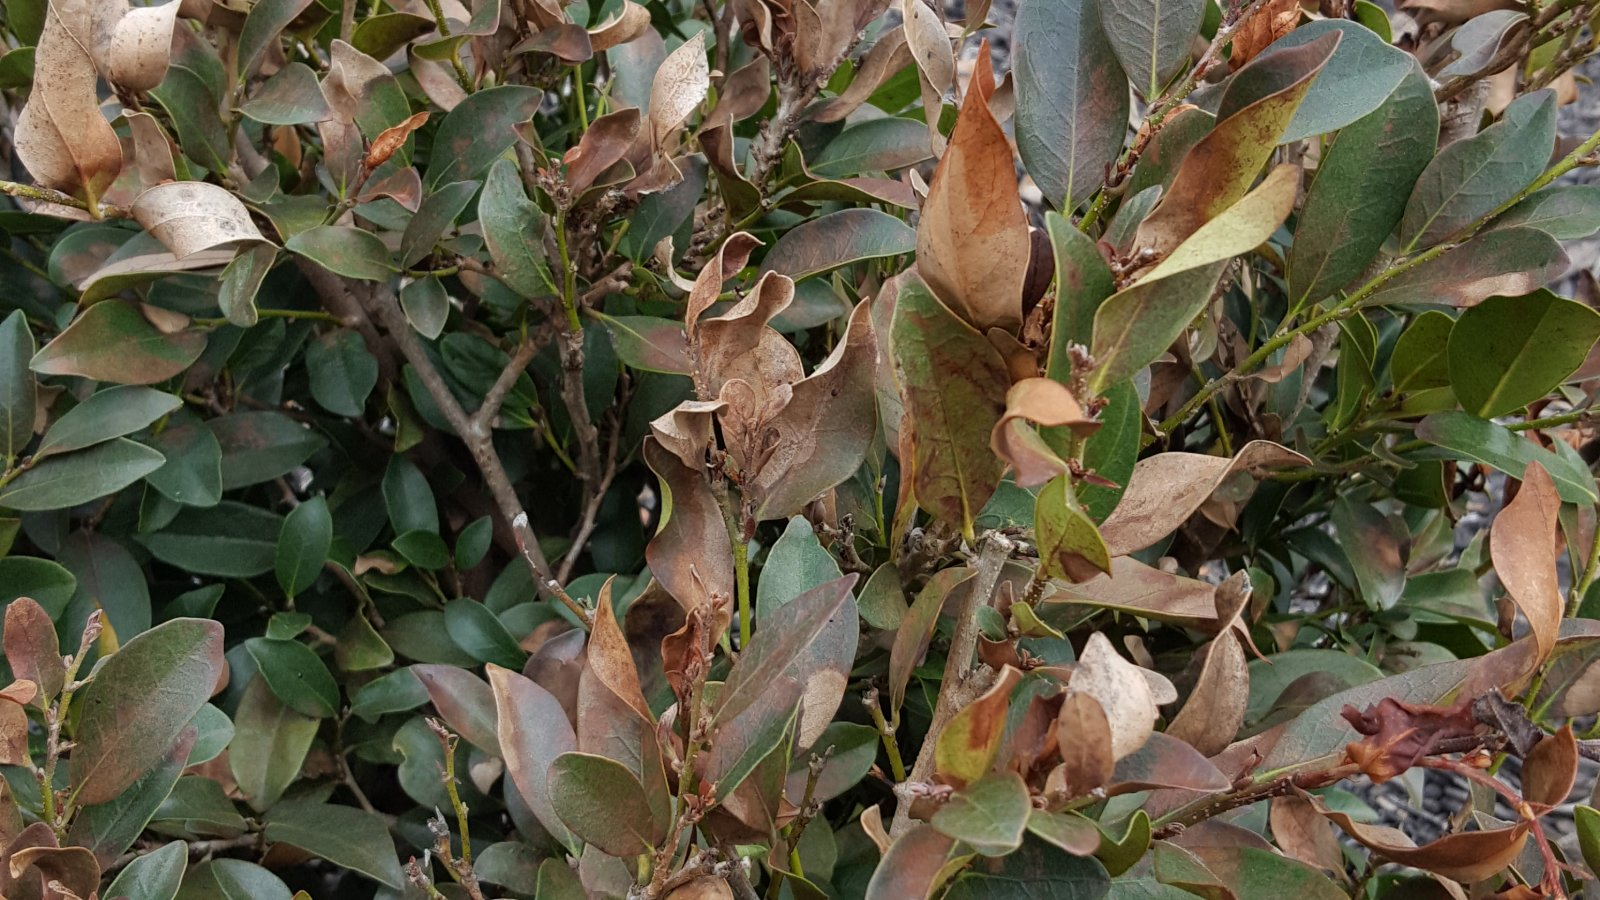 Cold Damage to Plants